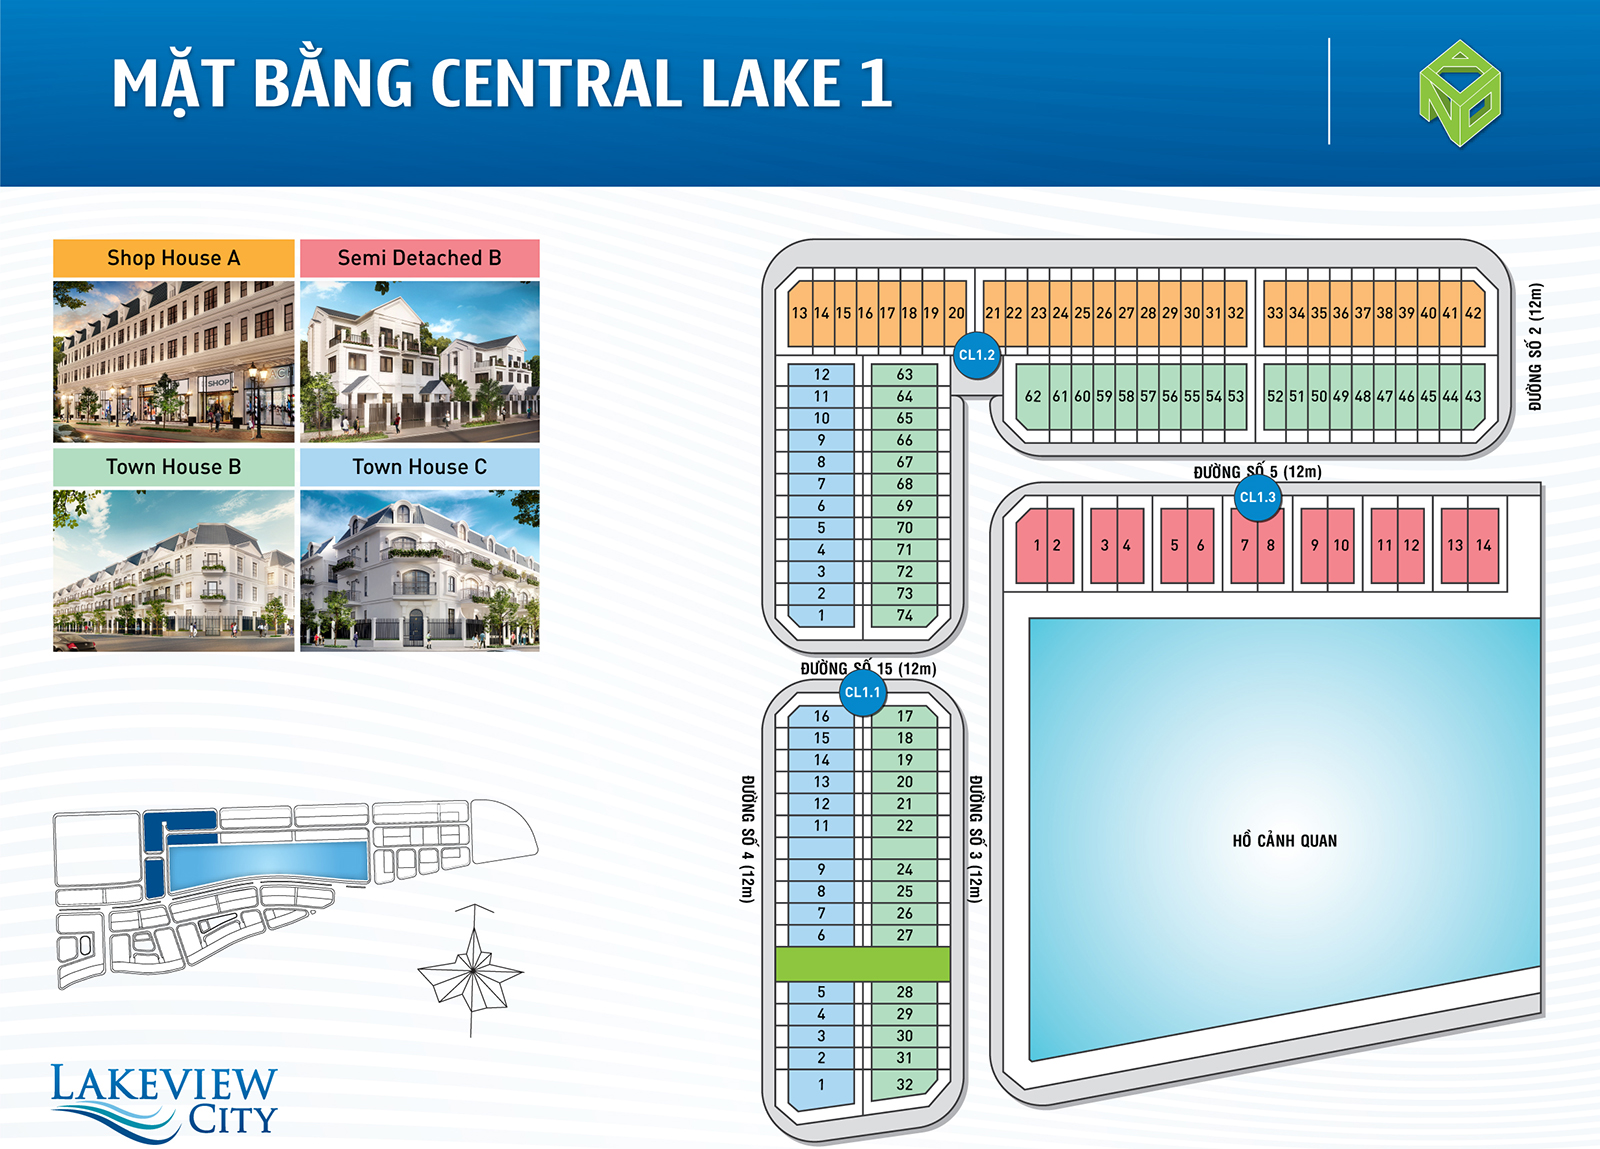 mat-bang-central-lake-1